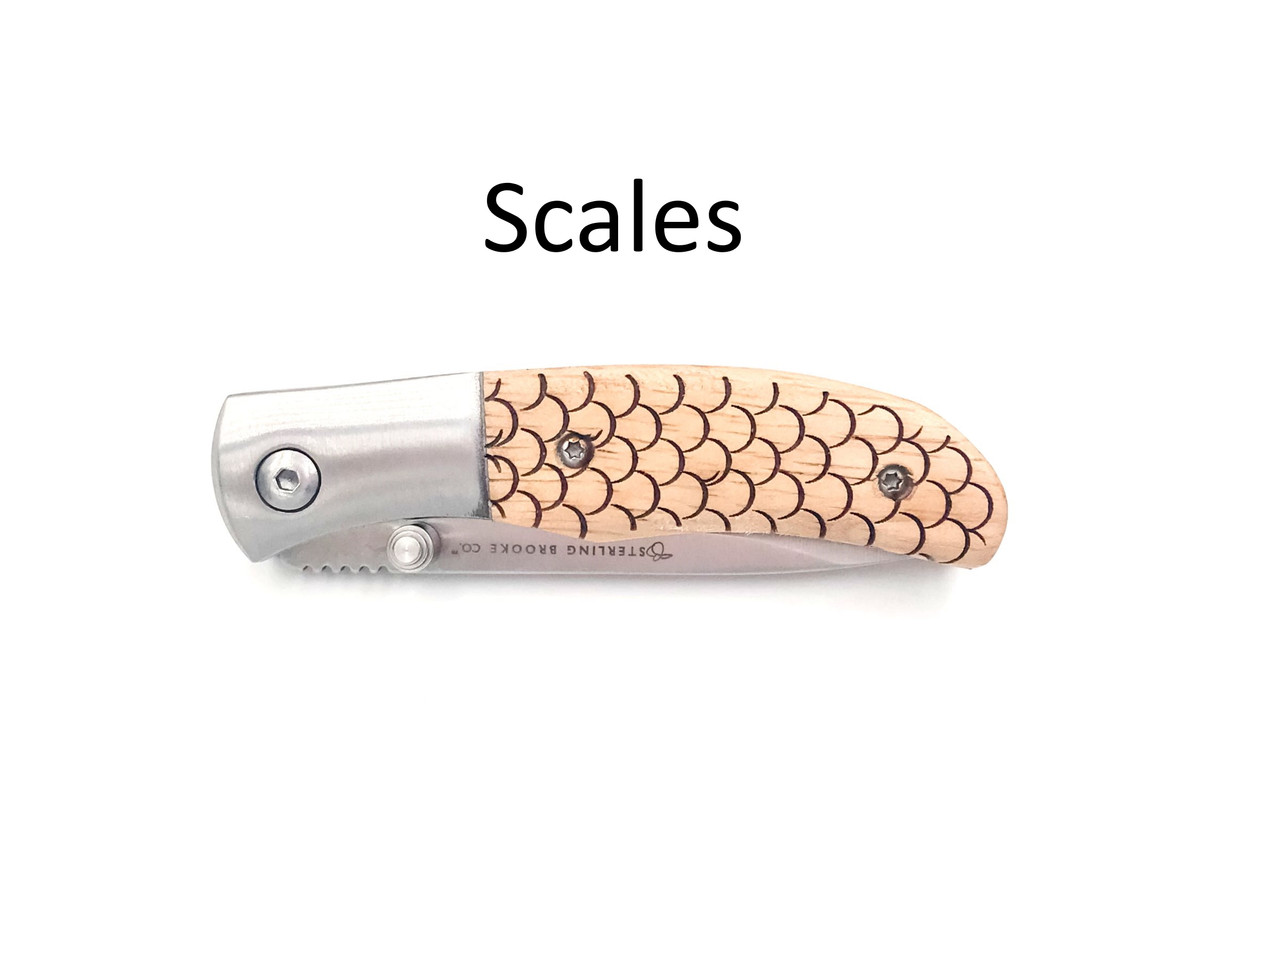 Classic Small Pocket Knife – Choose Your Design – Optional Custom Engraving - Scales